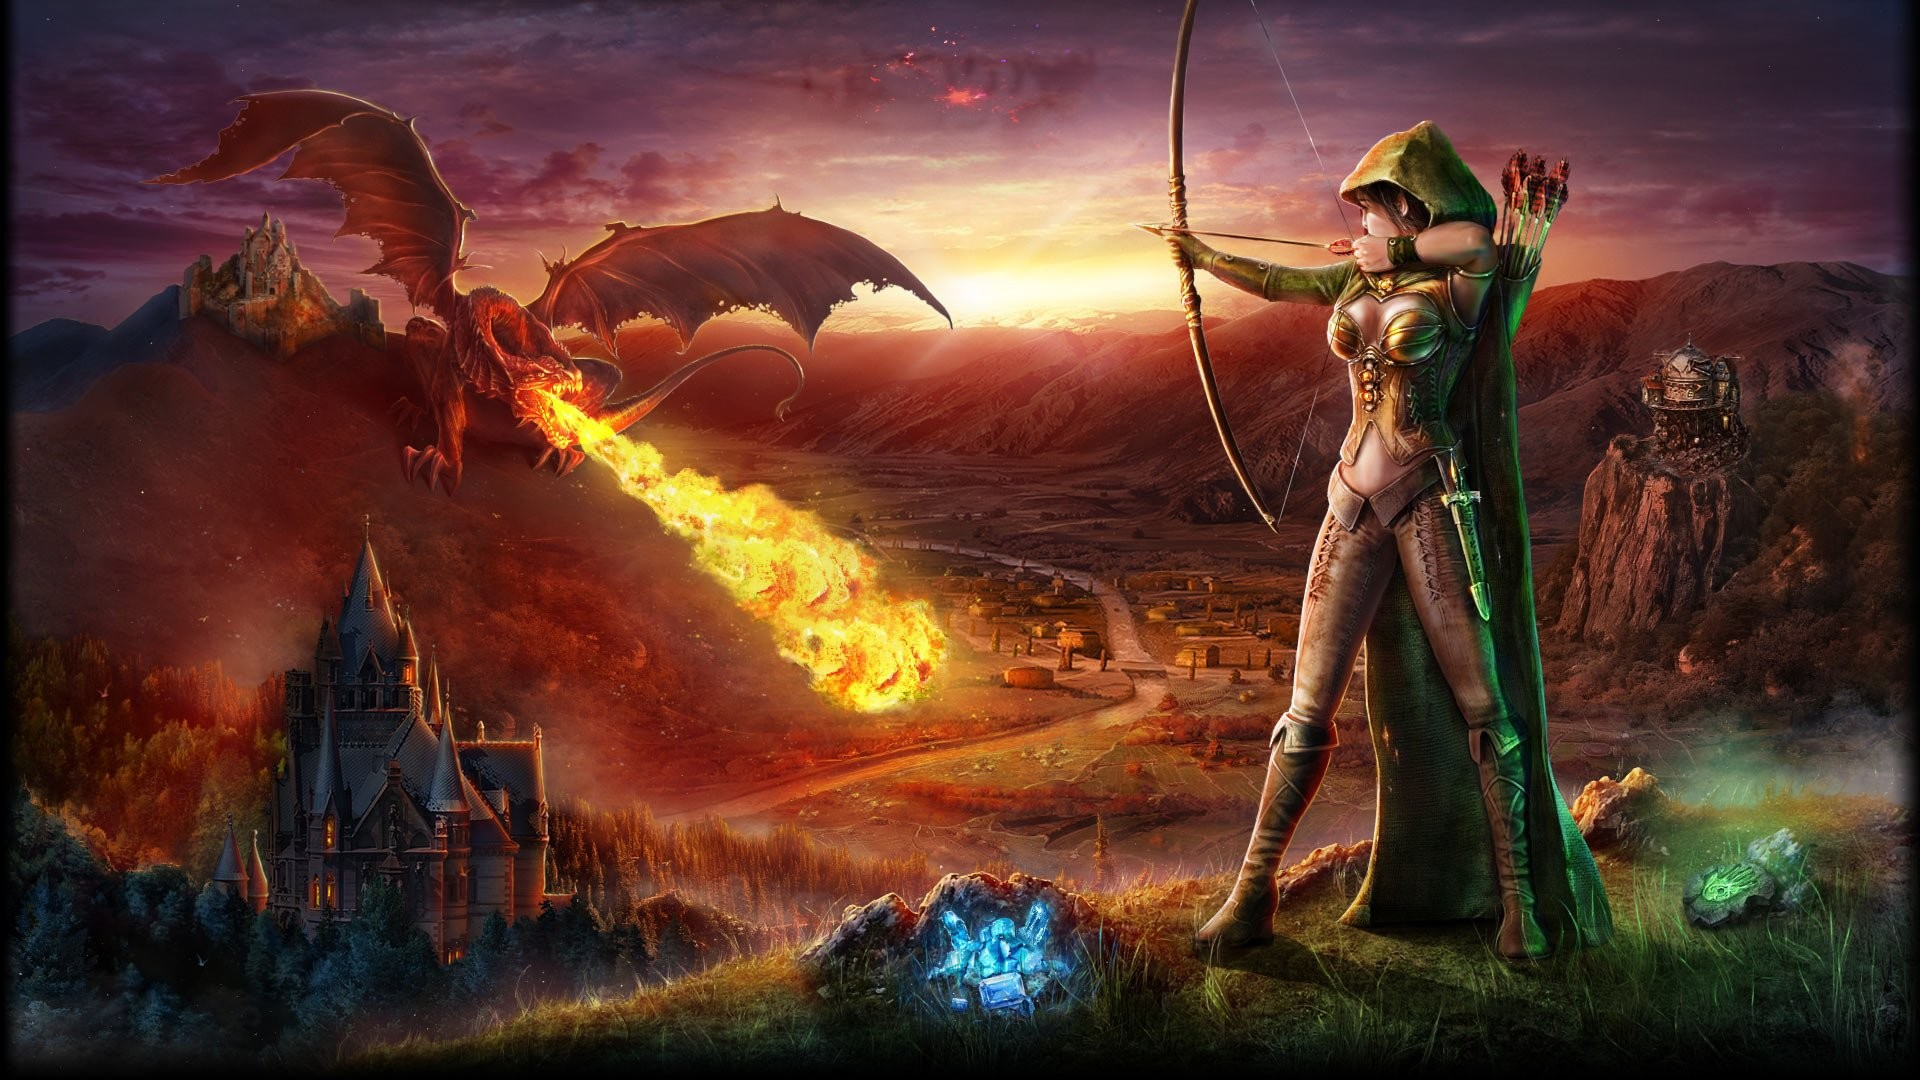 Fantasy World Art Dragon Fire Dragon Archer Artwork War Armor Fire Castle